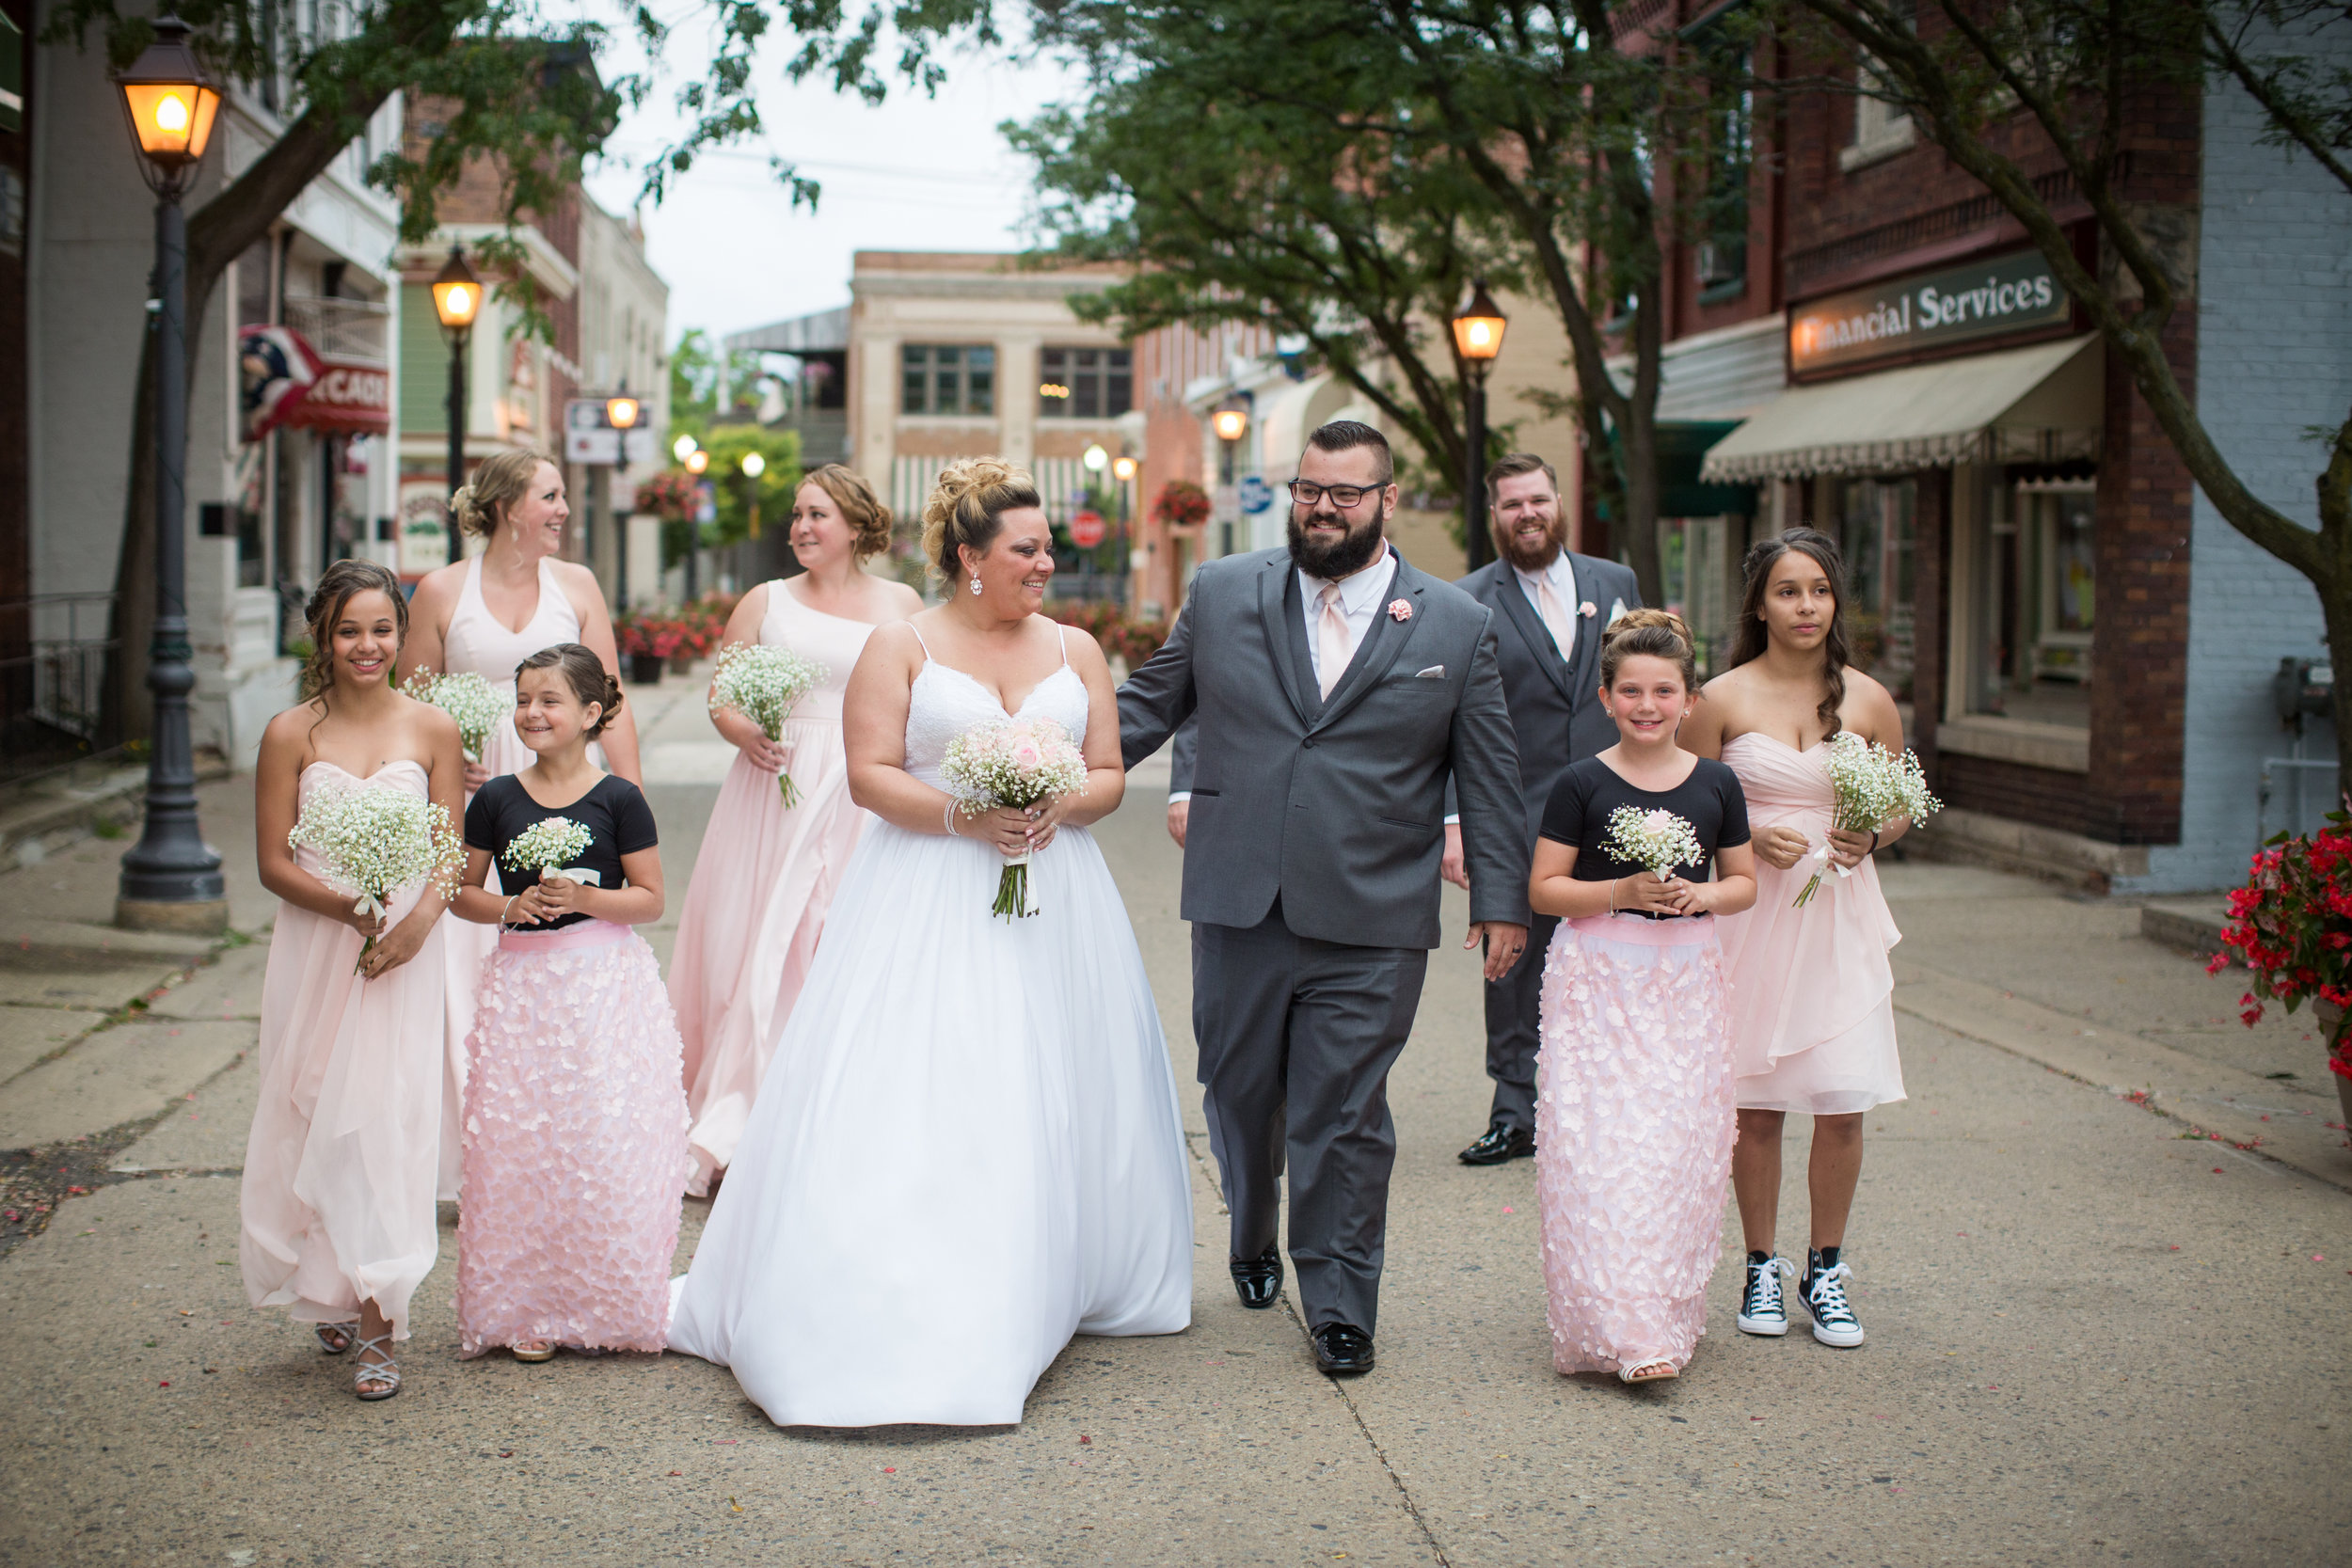 Bride and groom walking down street during wedding pictures in Rochester Michigan